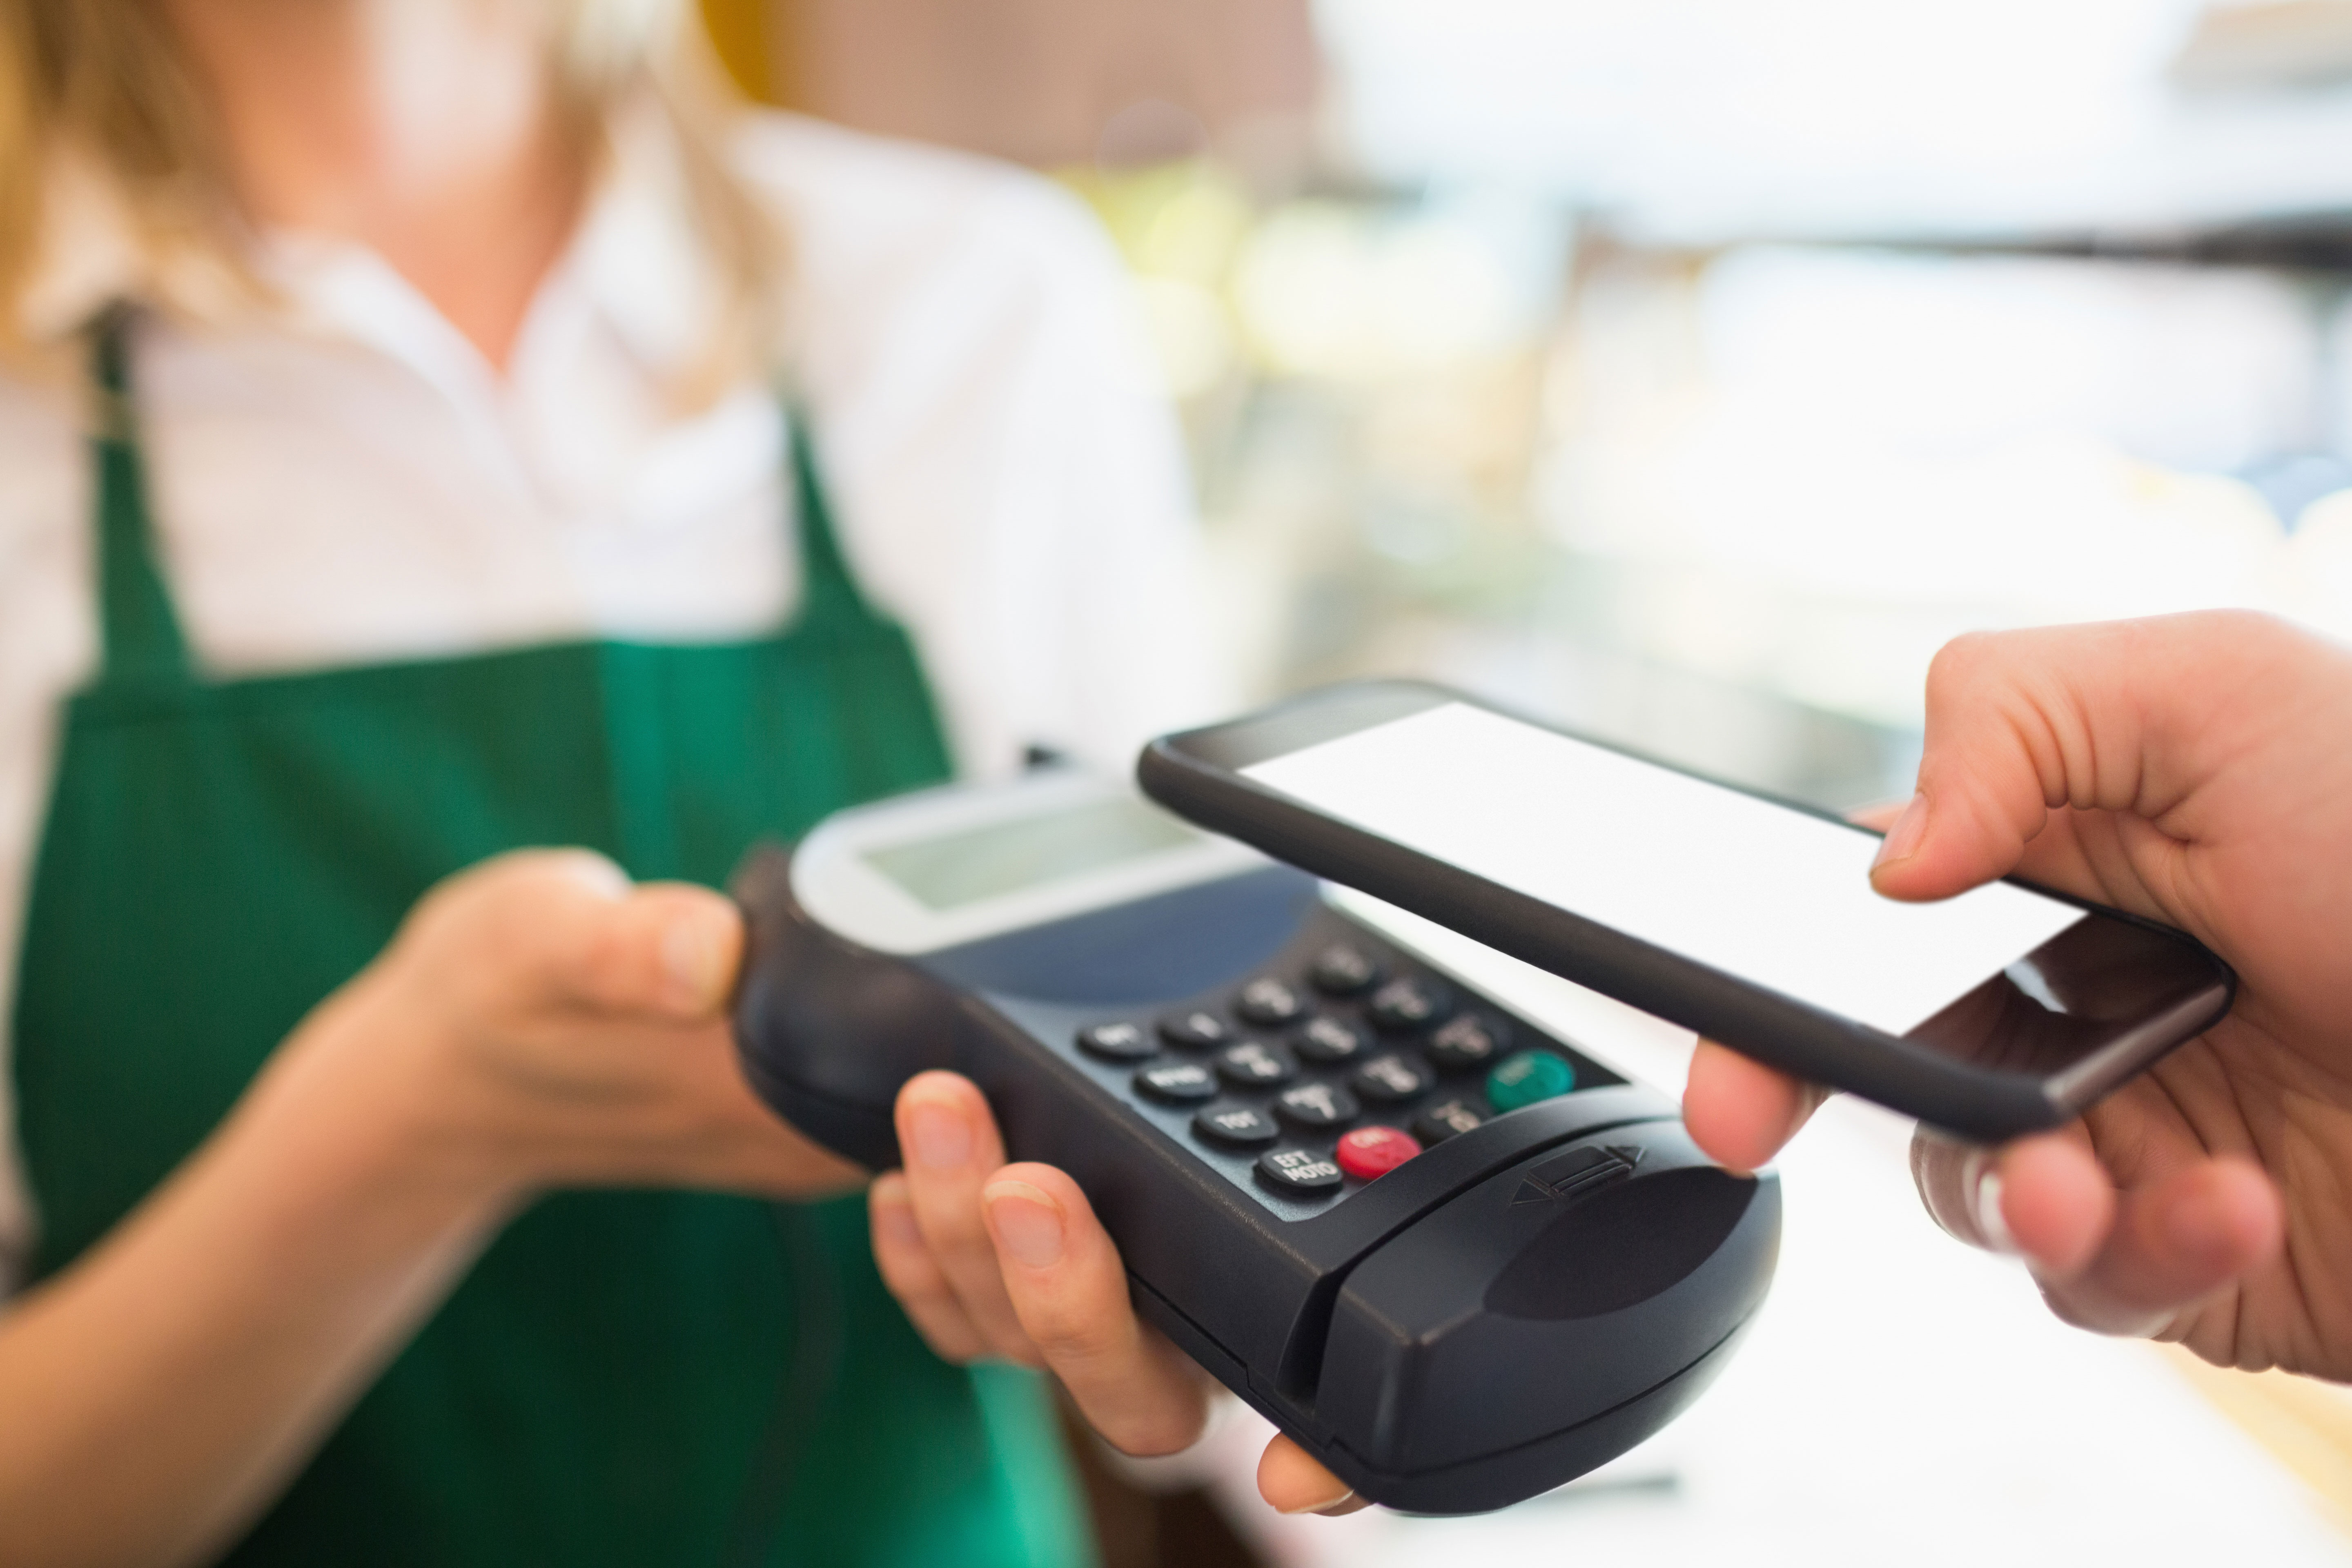 Secure purchasing transactions with NFC